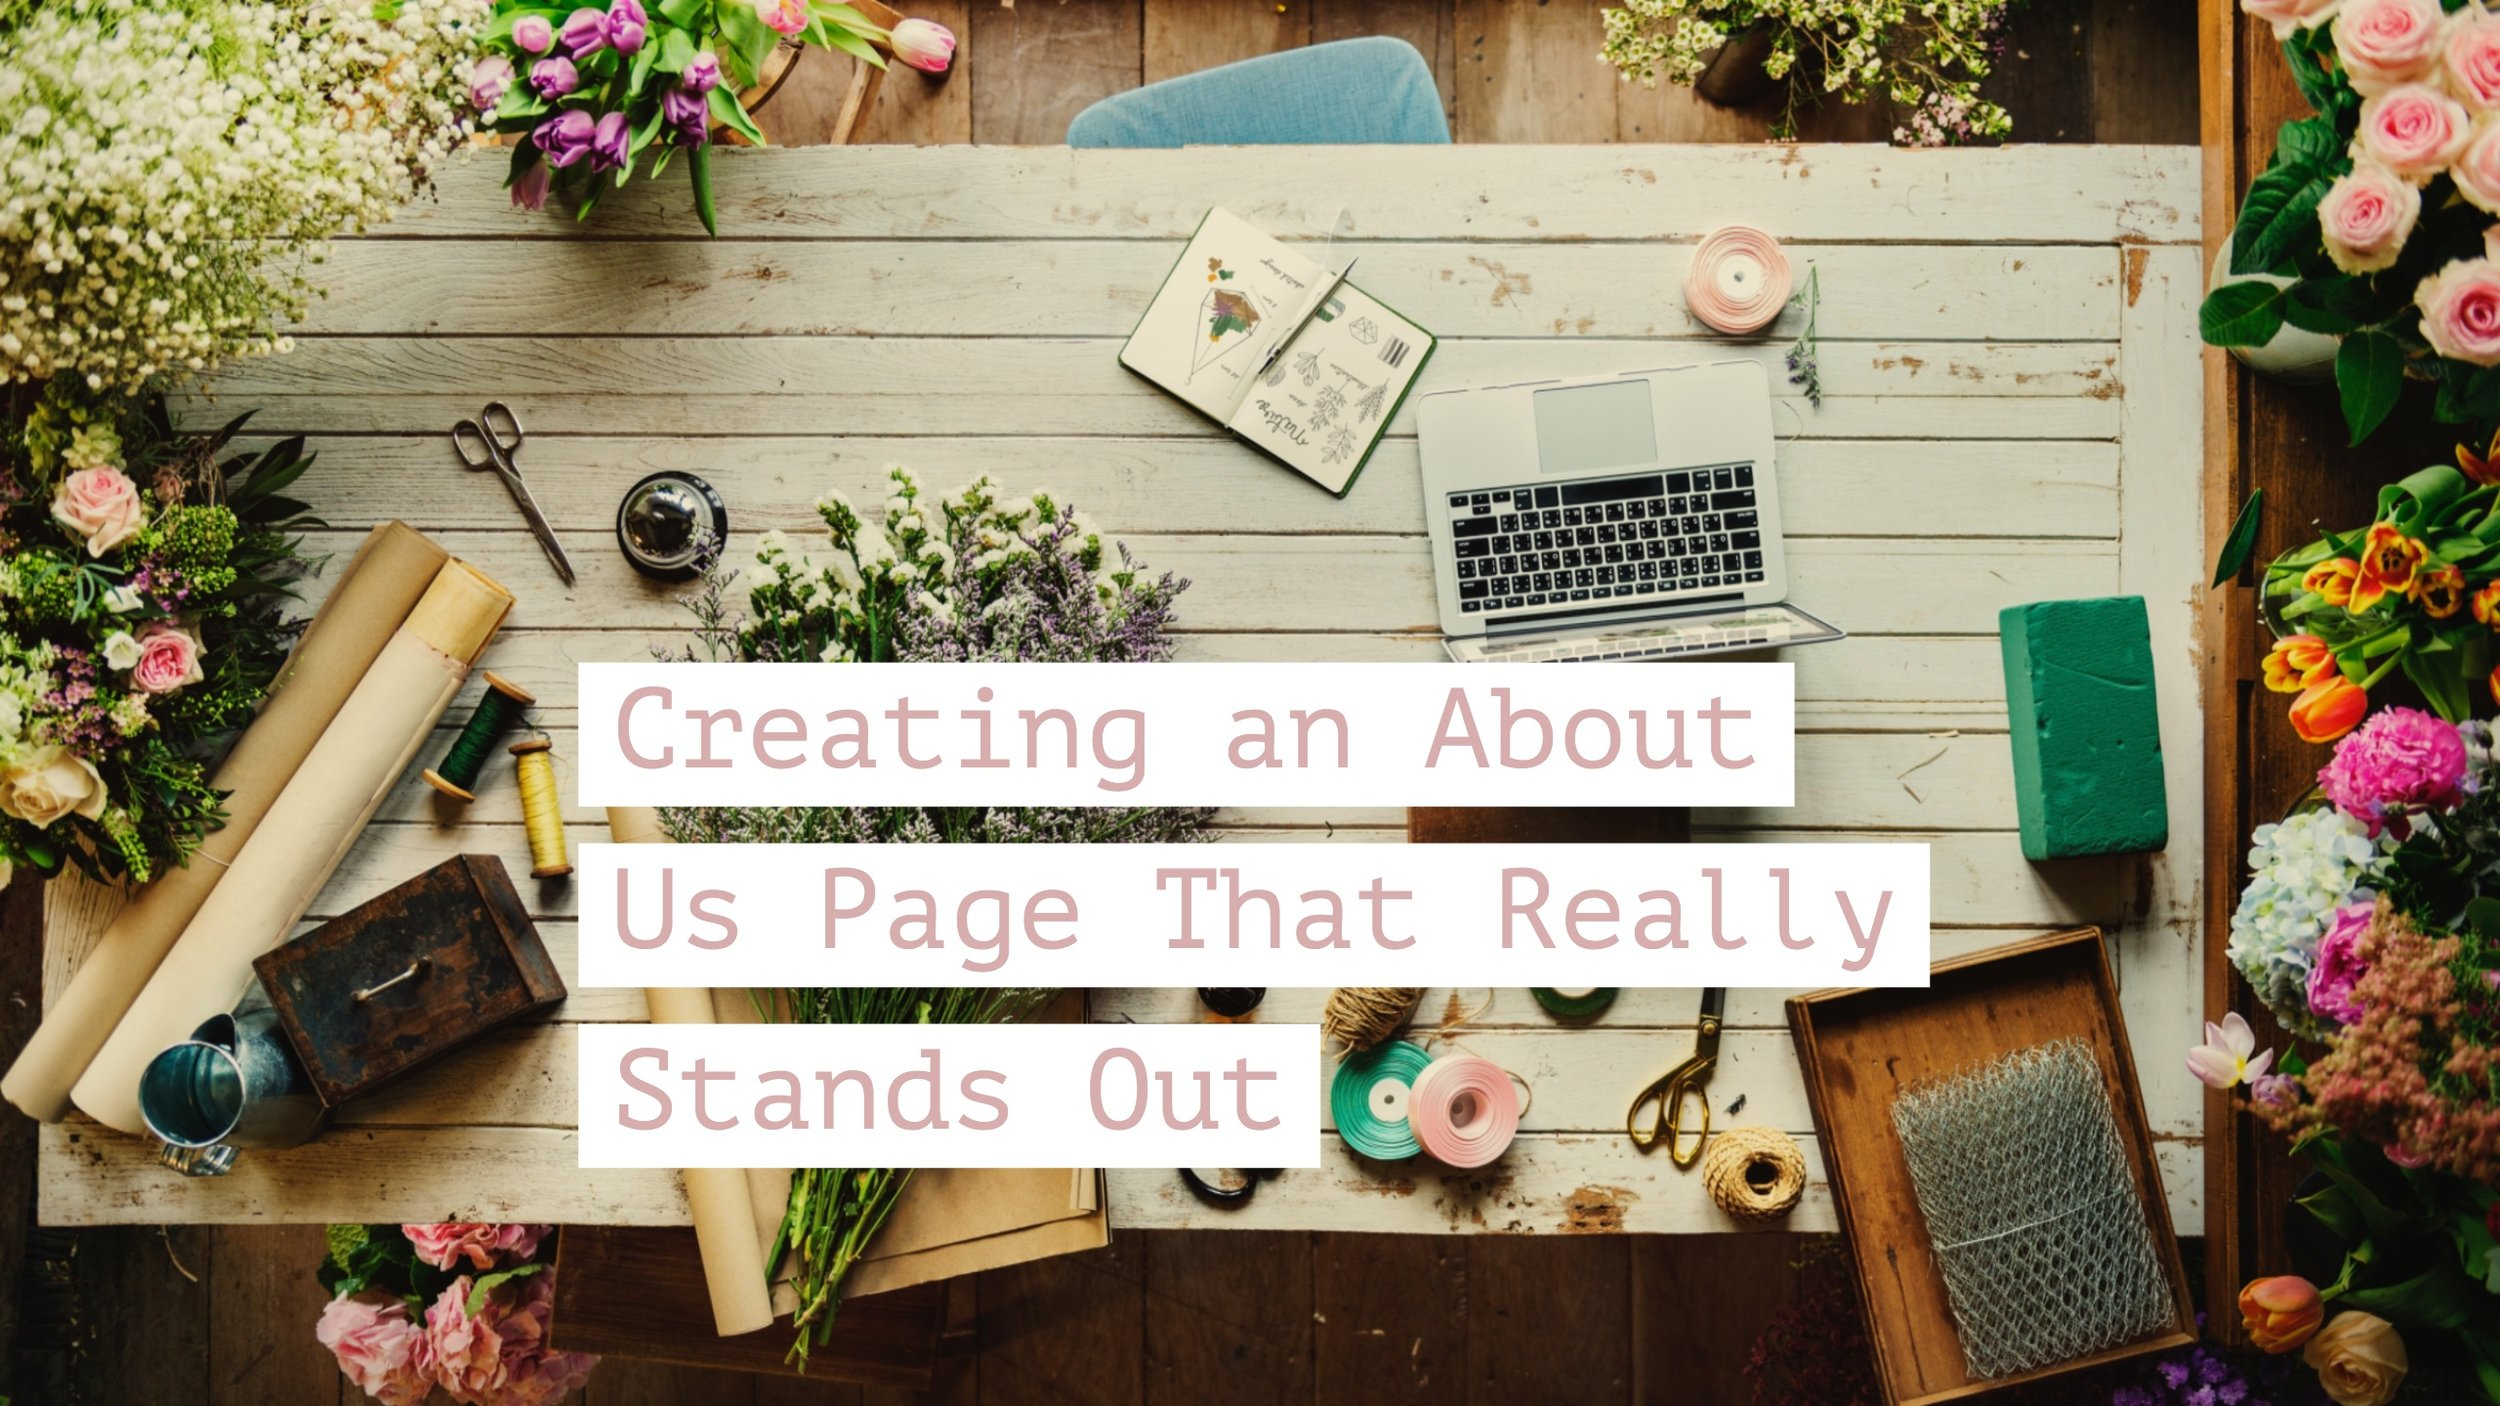 Creating-an-About-Us-Page -That-Really-Stands-Out-with-graphic-design-in-california.jpg